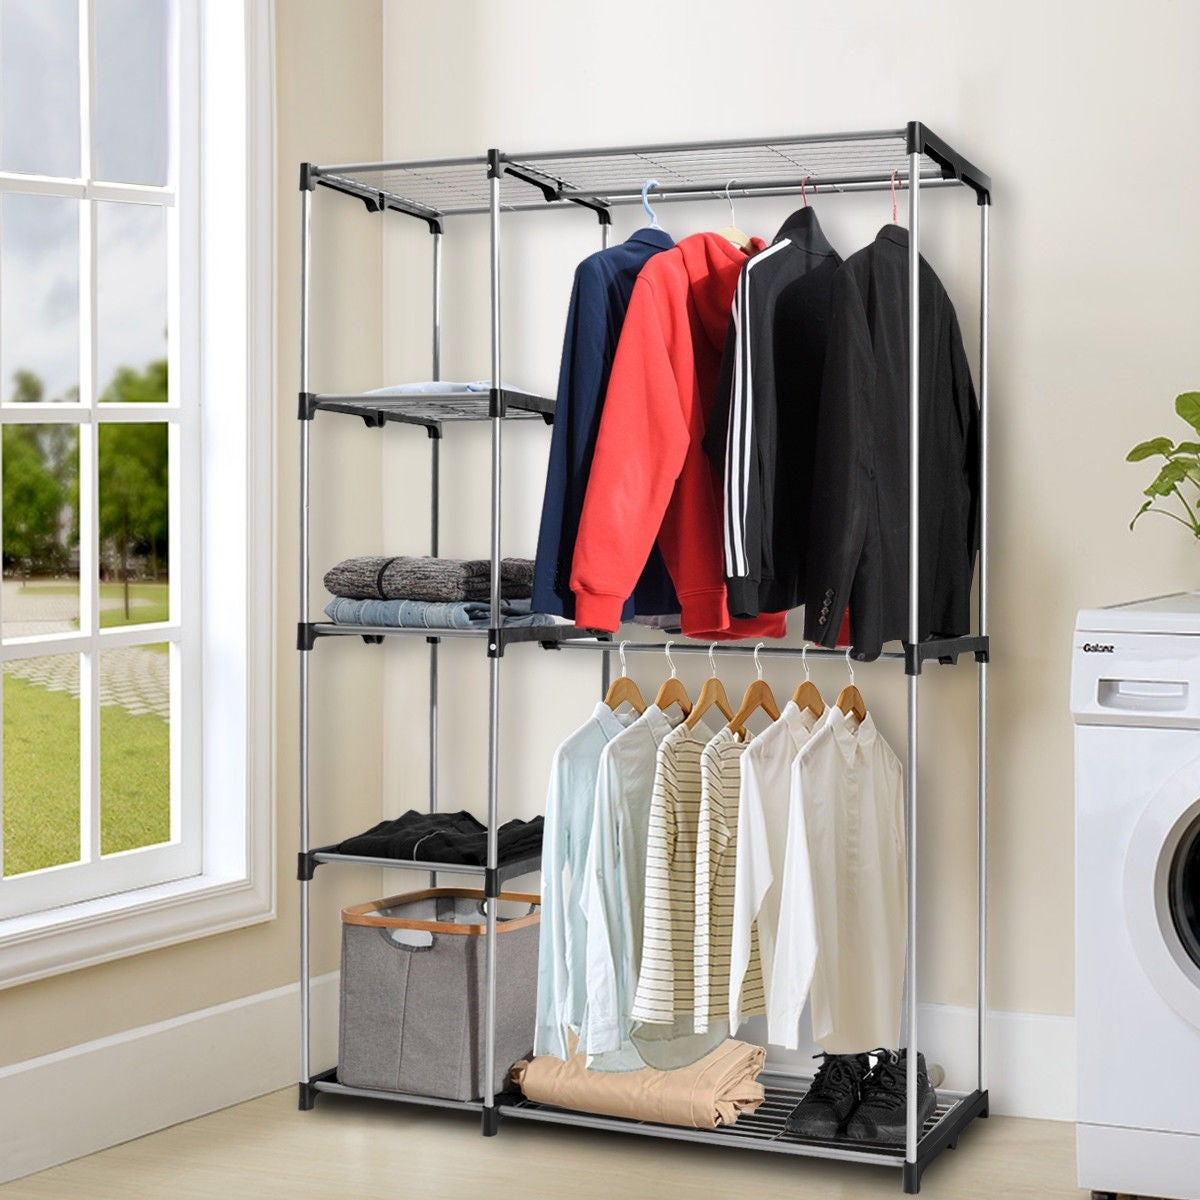 Gymax Closet Organizer Garment Rack Portable Clothes Hanger Storage Home Shelf As Pic